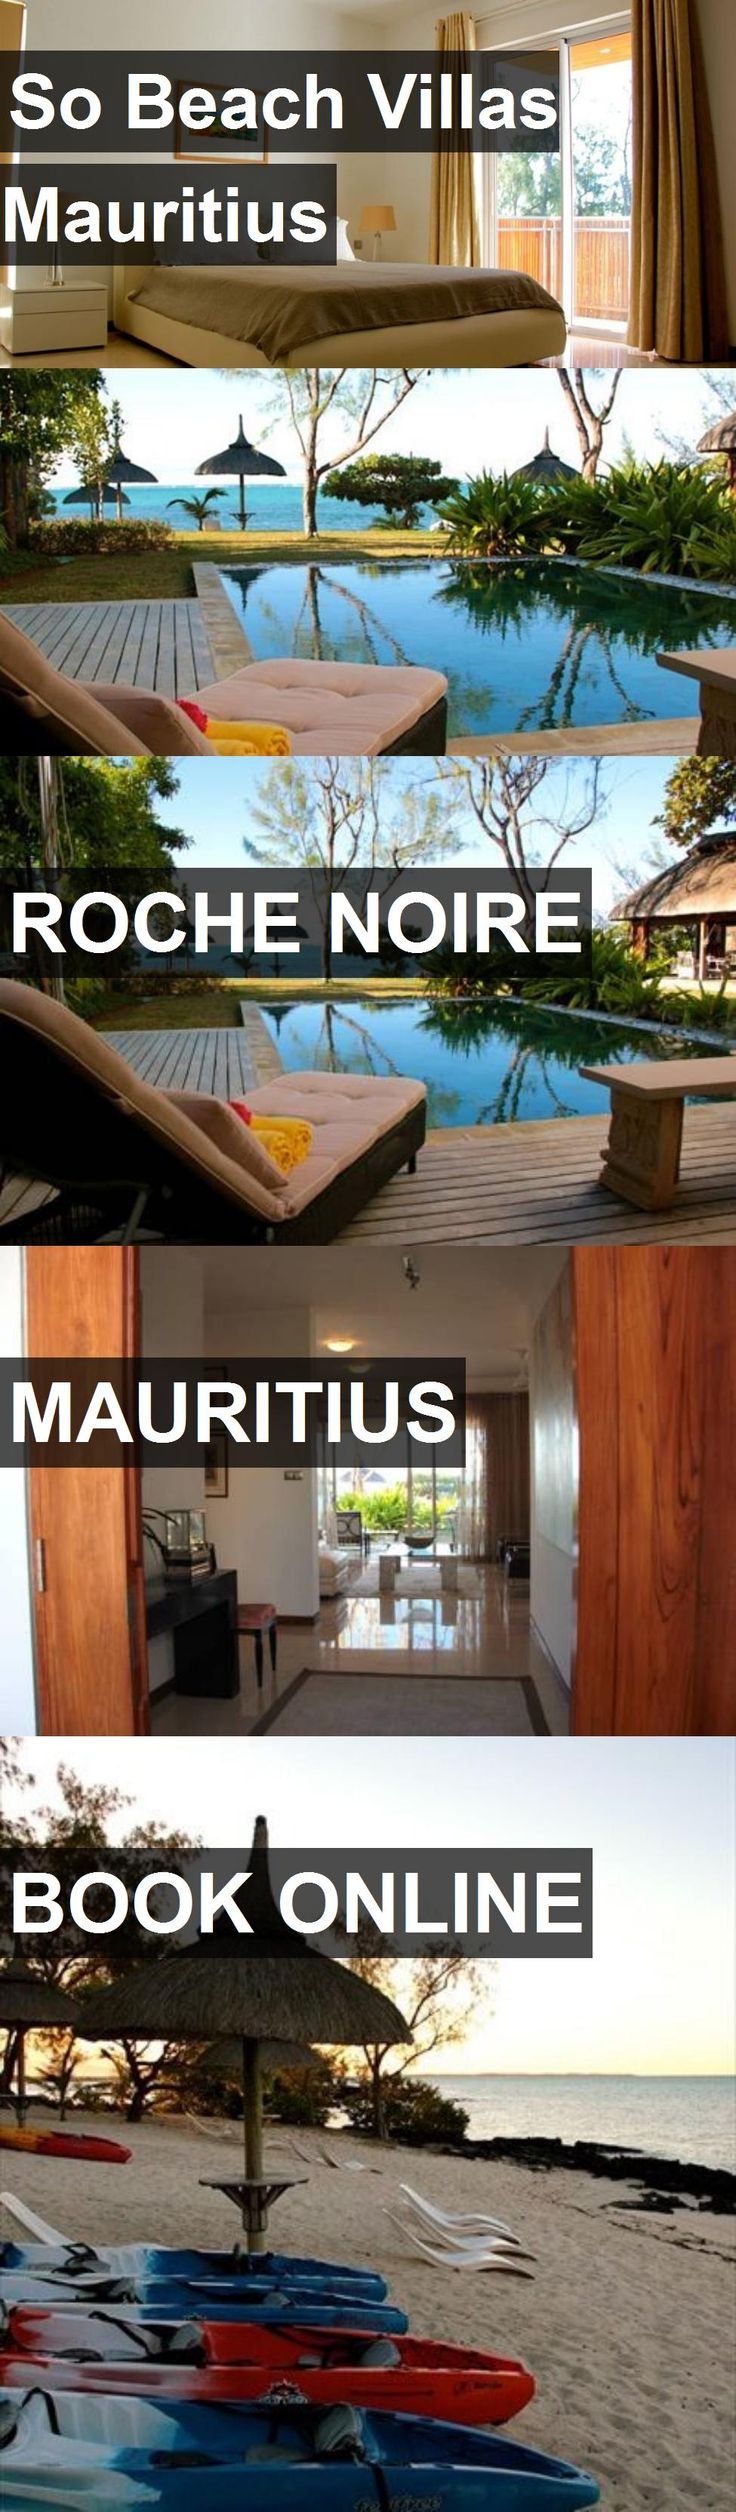 Hotel So Beach Villas Mauritius in Roche Noire, Mauritius. For more information, photos, reviews and best prices please follow the link. #Mauritius #RocheNoire #travel #vacation #hotel